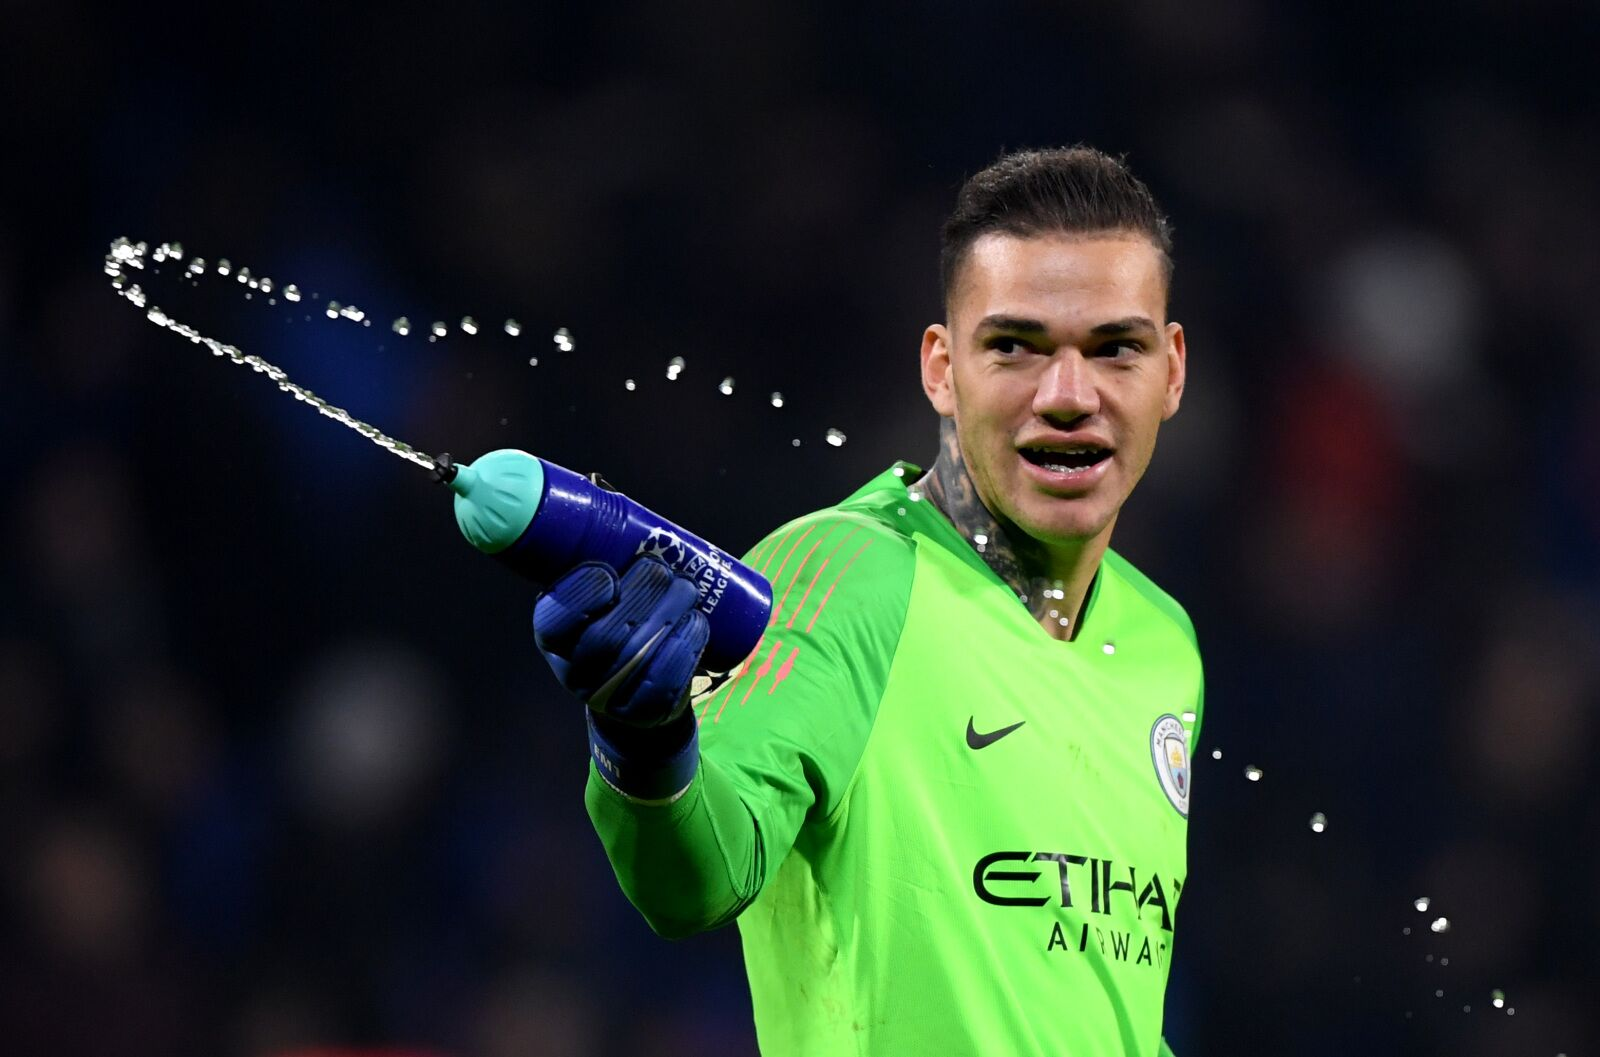 Manchester City Best Players Last 10 Years: The Goalkeepers